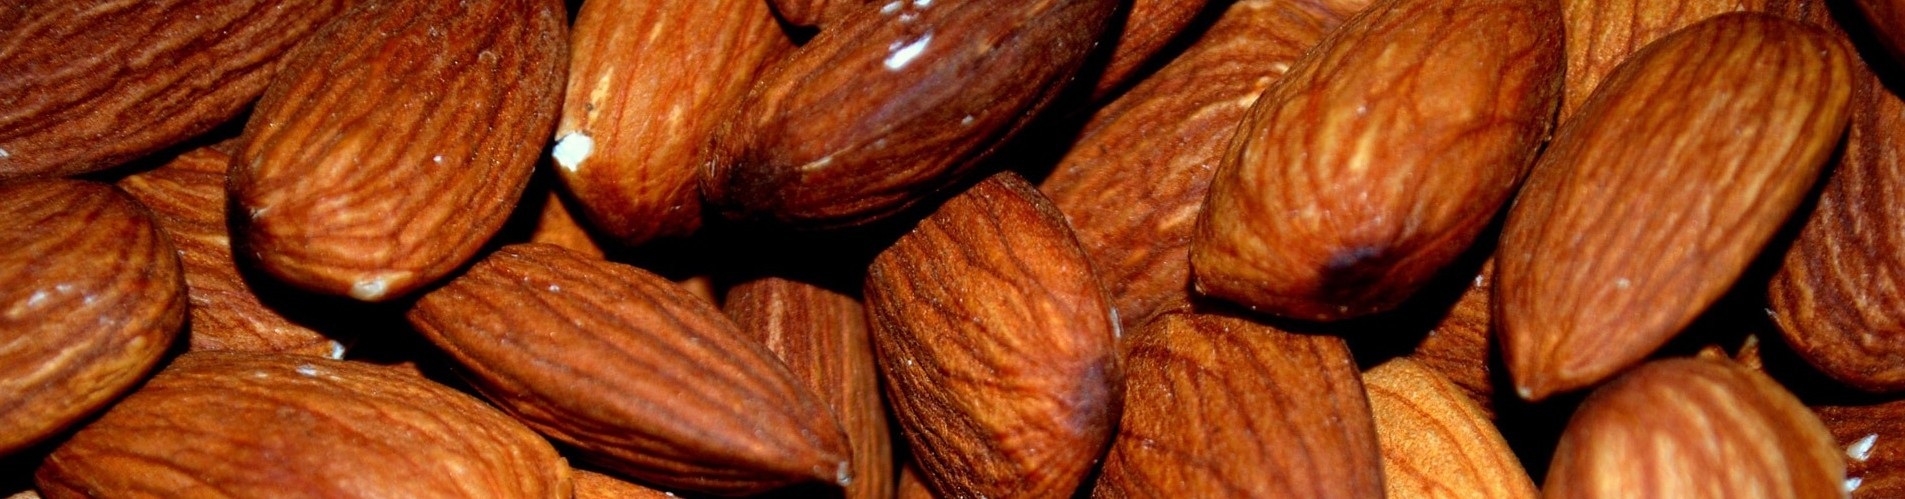 15 nuts almond-83766